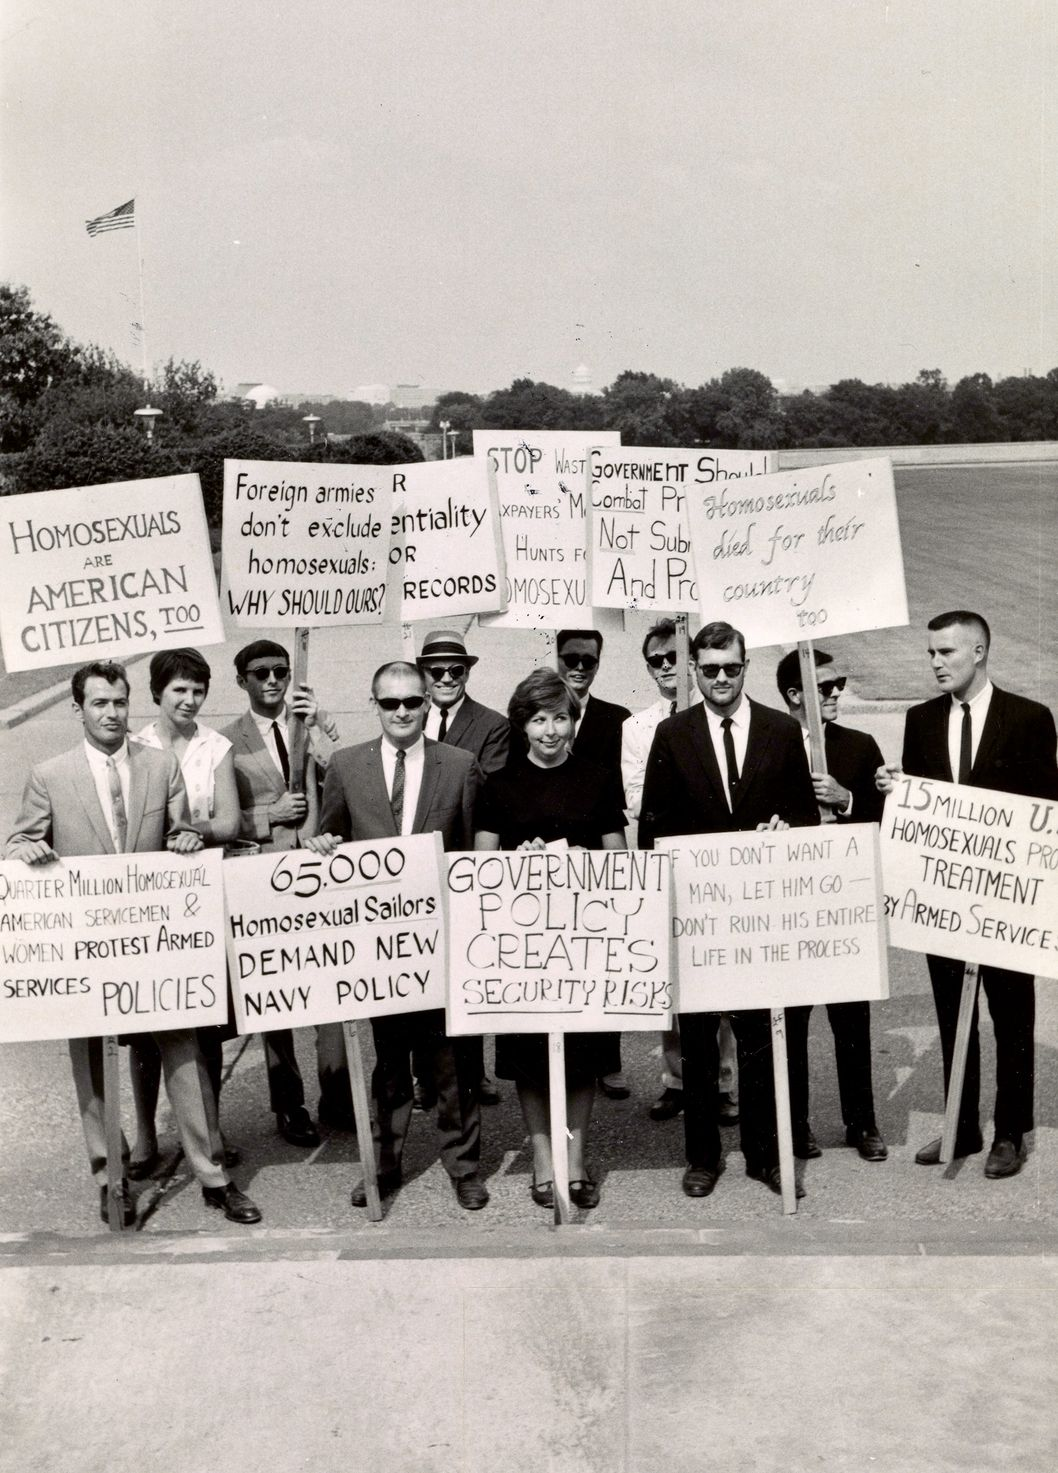 Protestors gather outside the Pentagon in 1965